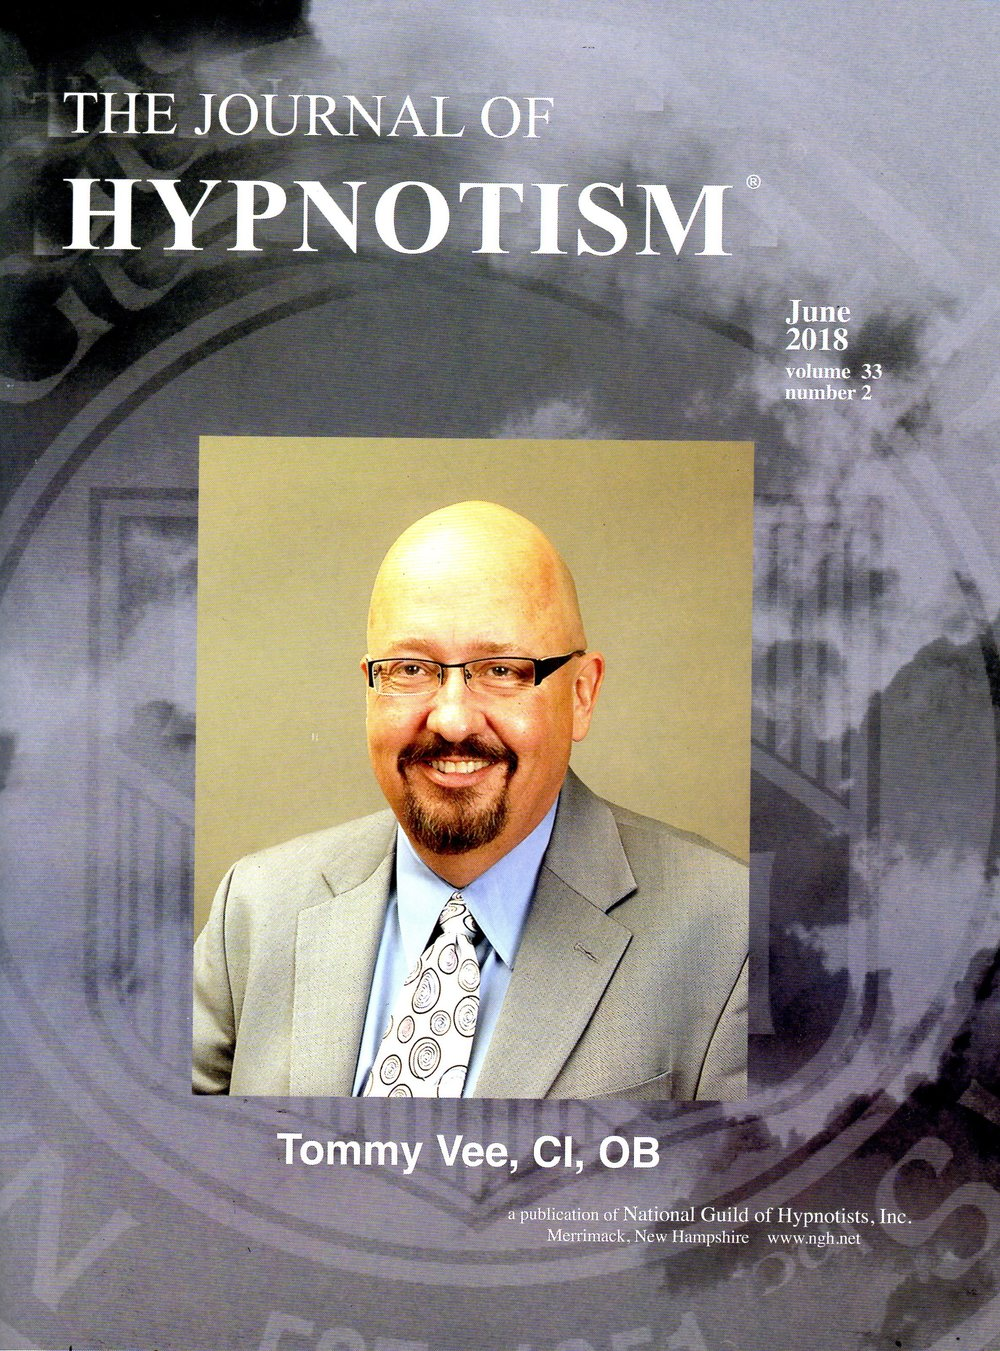 As read about in the National Guild of Hypnotists'